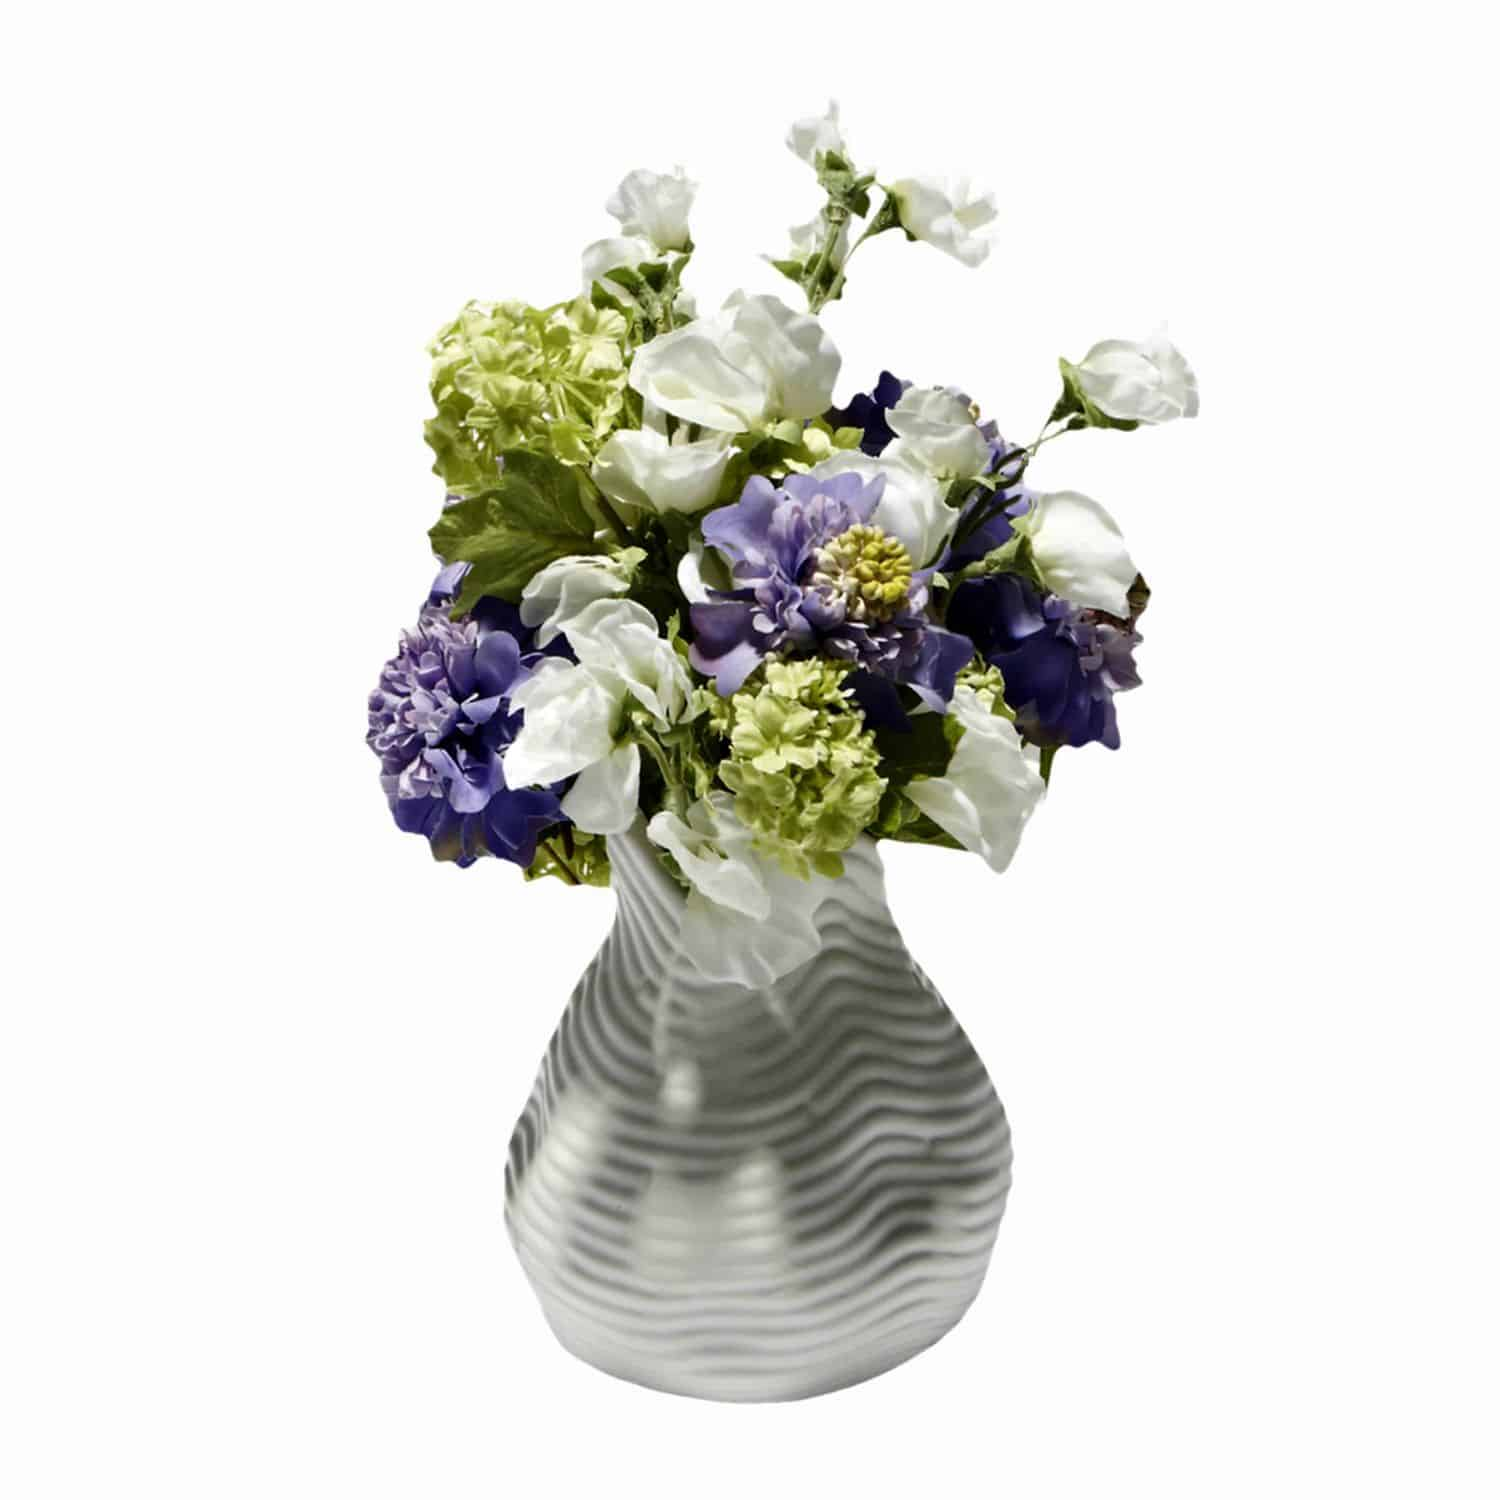 Artificial Flower Baskets Online : Silk flower arrangements fake bouquets